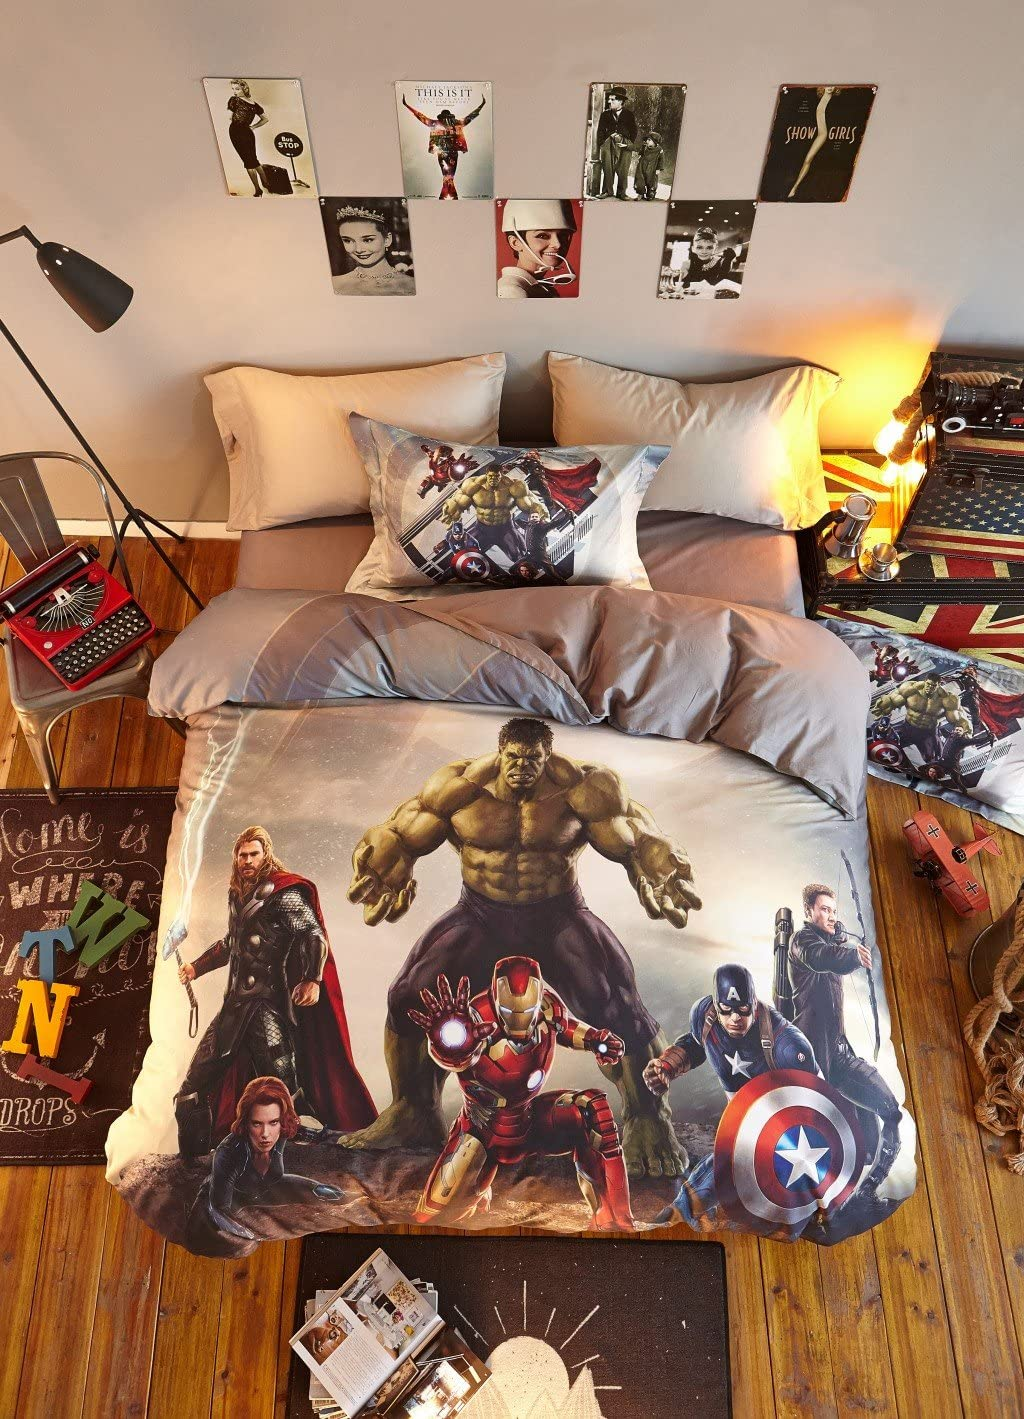 Haru Homie Luxurious 100% Cotton Duvet Cover 3D Avengers Kids Reversible Bedding Set with Zipper Closure - Comfortable, Fade Resistant and Extremely Durable, Full/Queen